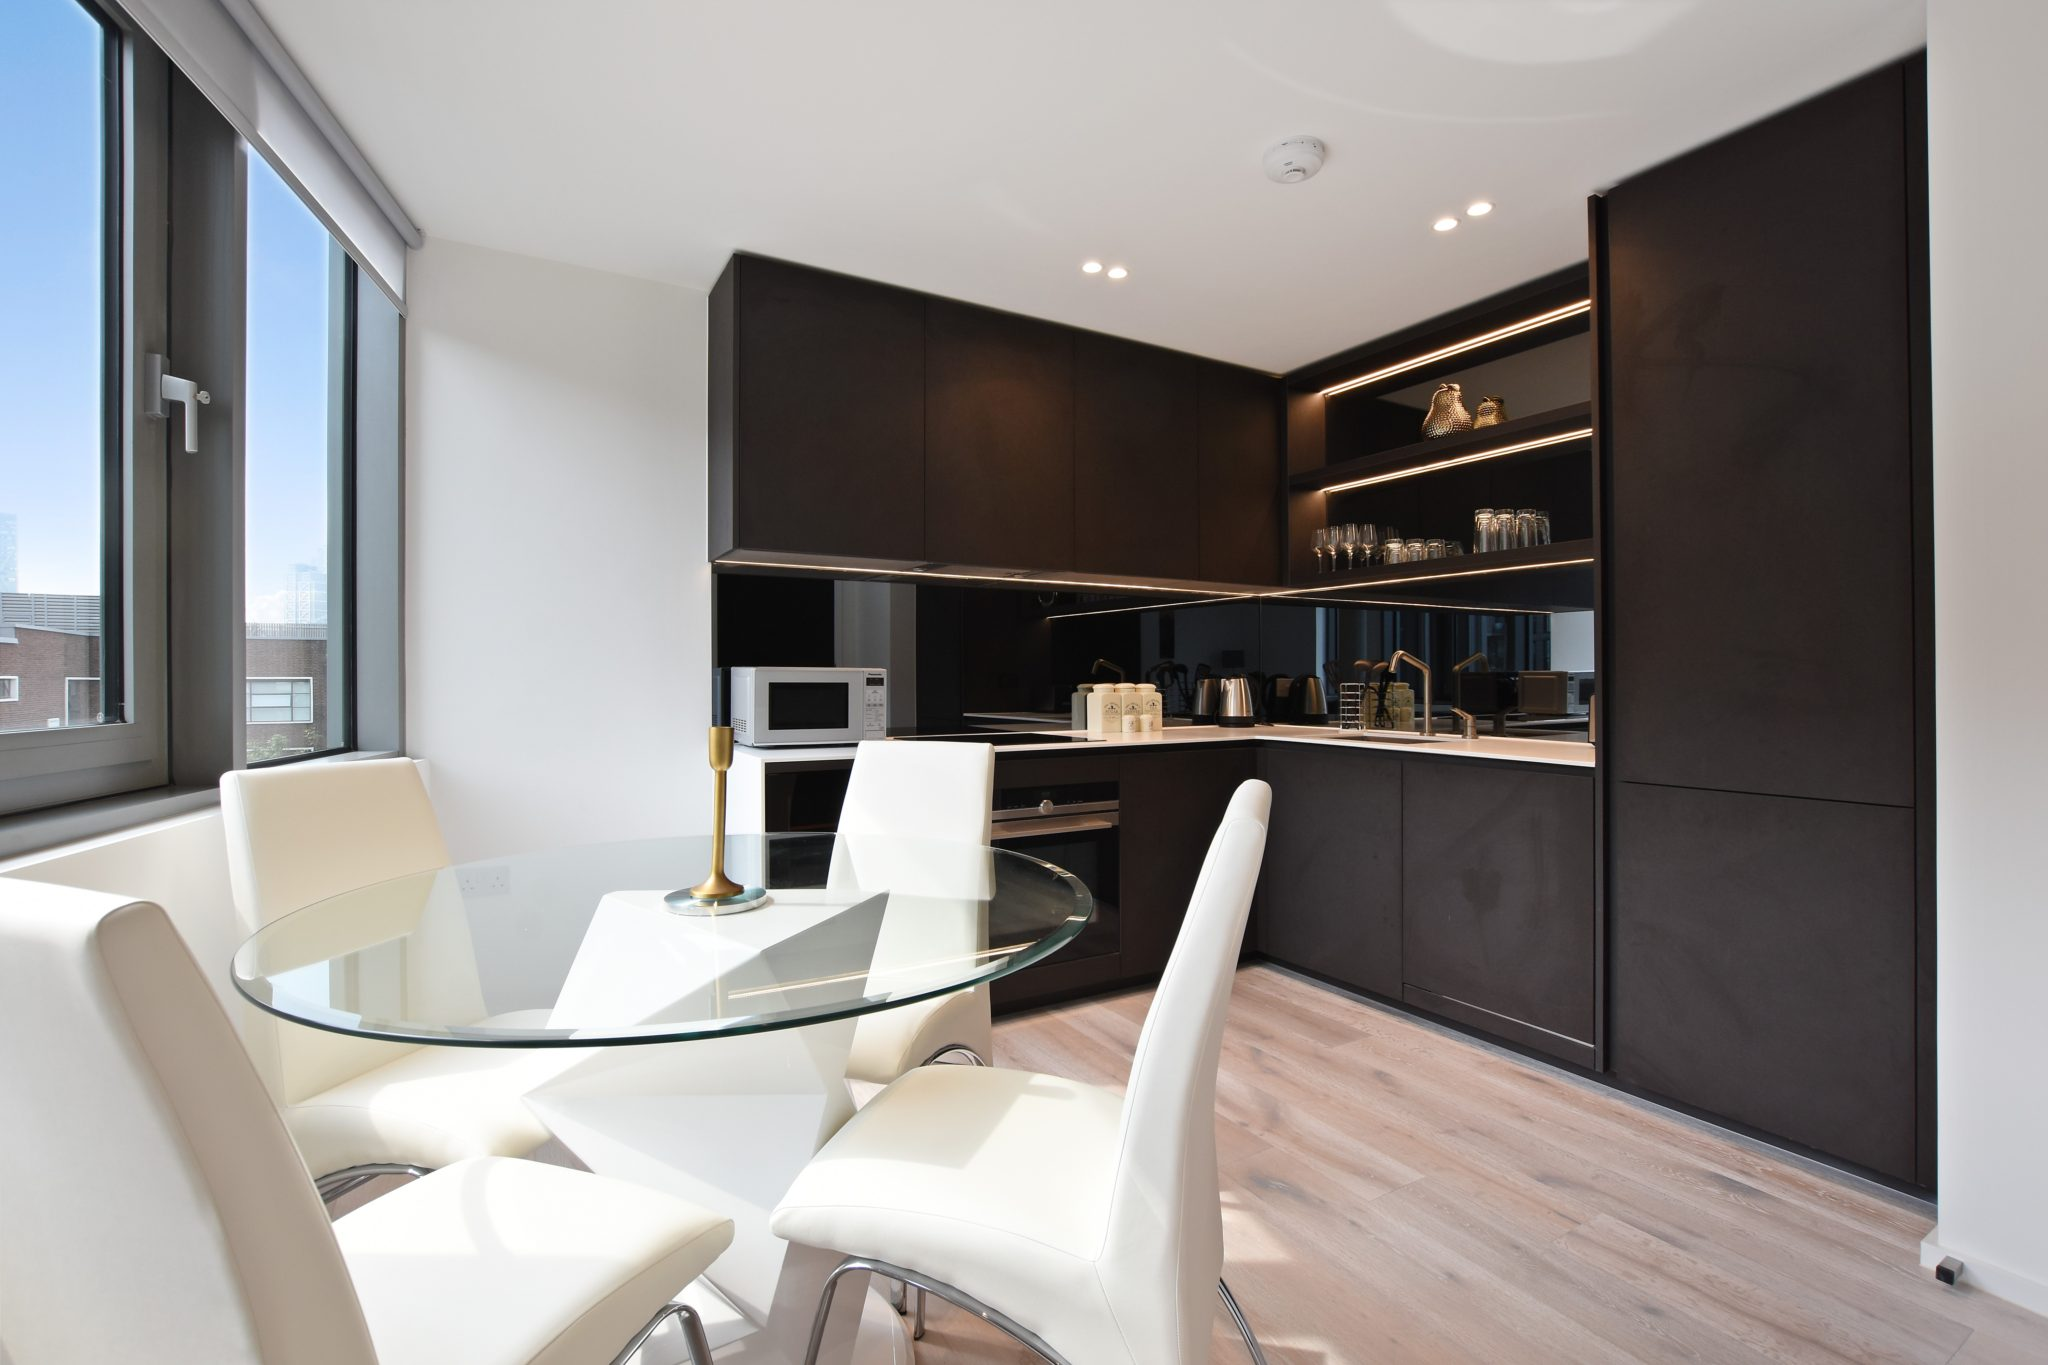 East-End-Accommodation-London-|-Hoxton-Apartments-|-Cheap-Self-catering-Accommodation-London-|-Serviced-Apartments-London-City-|NO-FEES--FREE-Wifi--BOOK-NOW---Urban-Stay